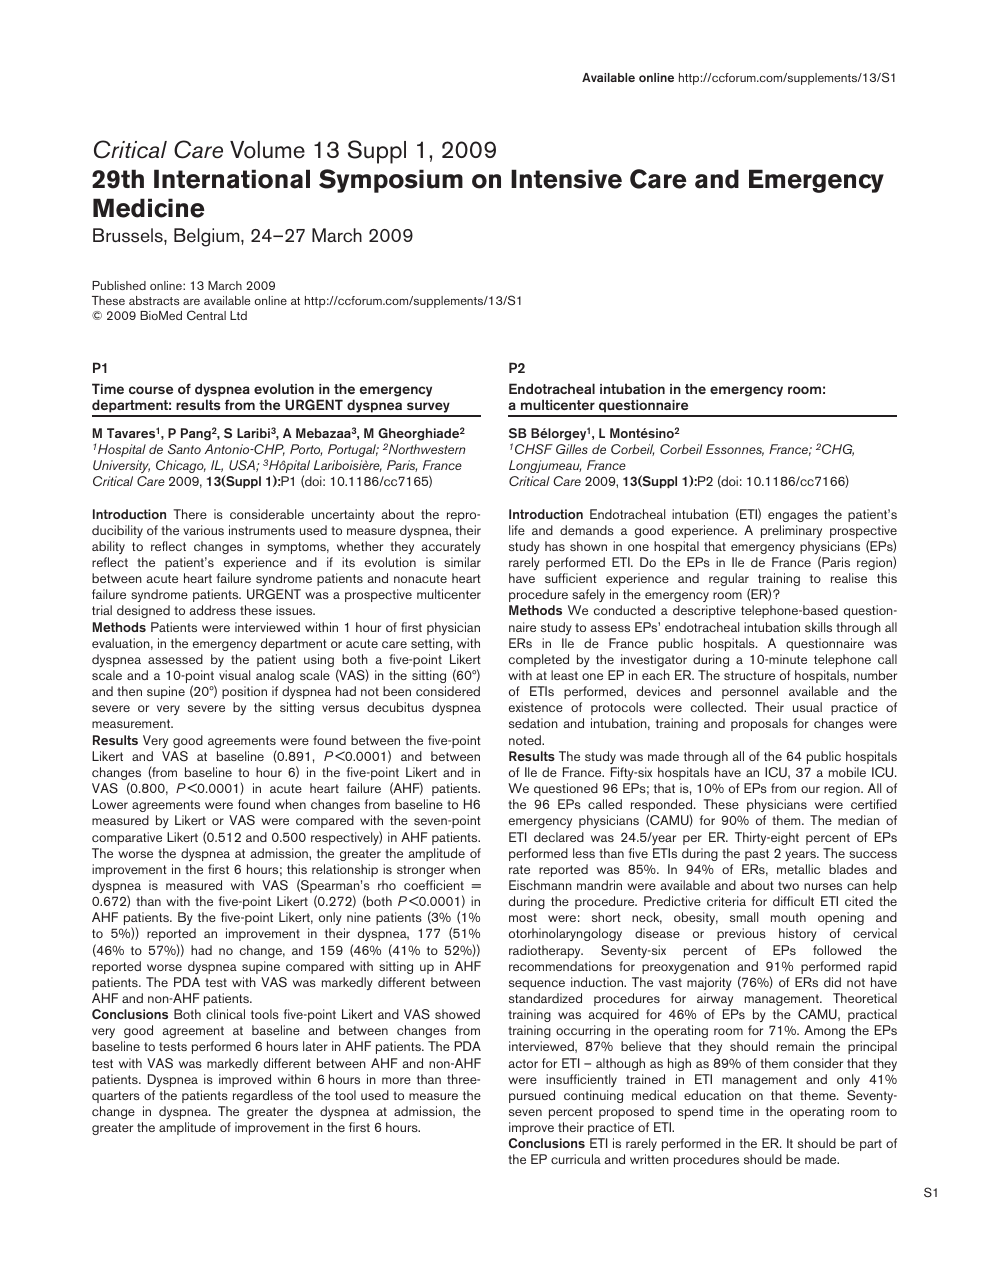 Evolution of acute lung injury/acute respiratory distress syndrome